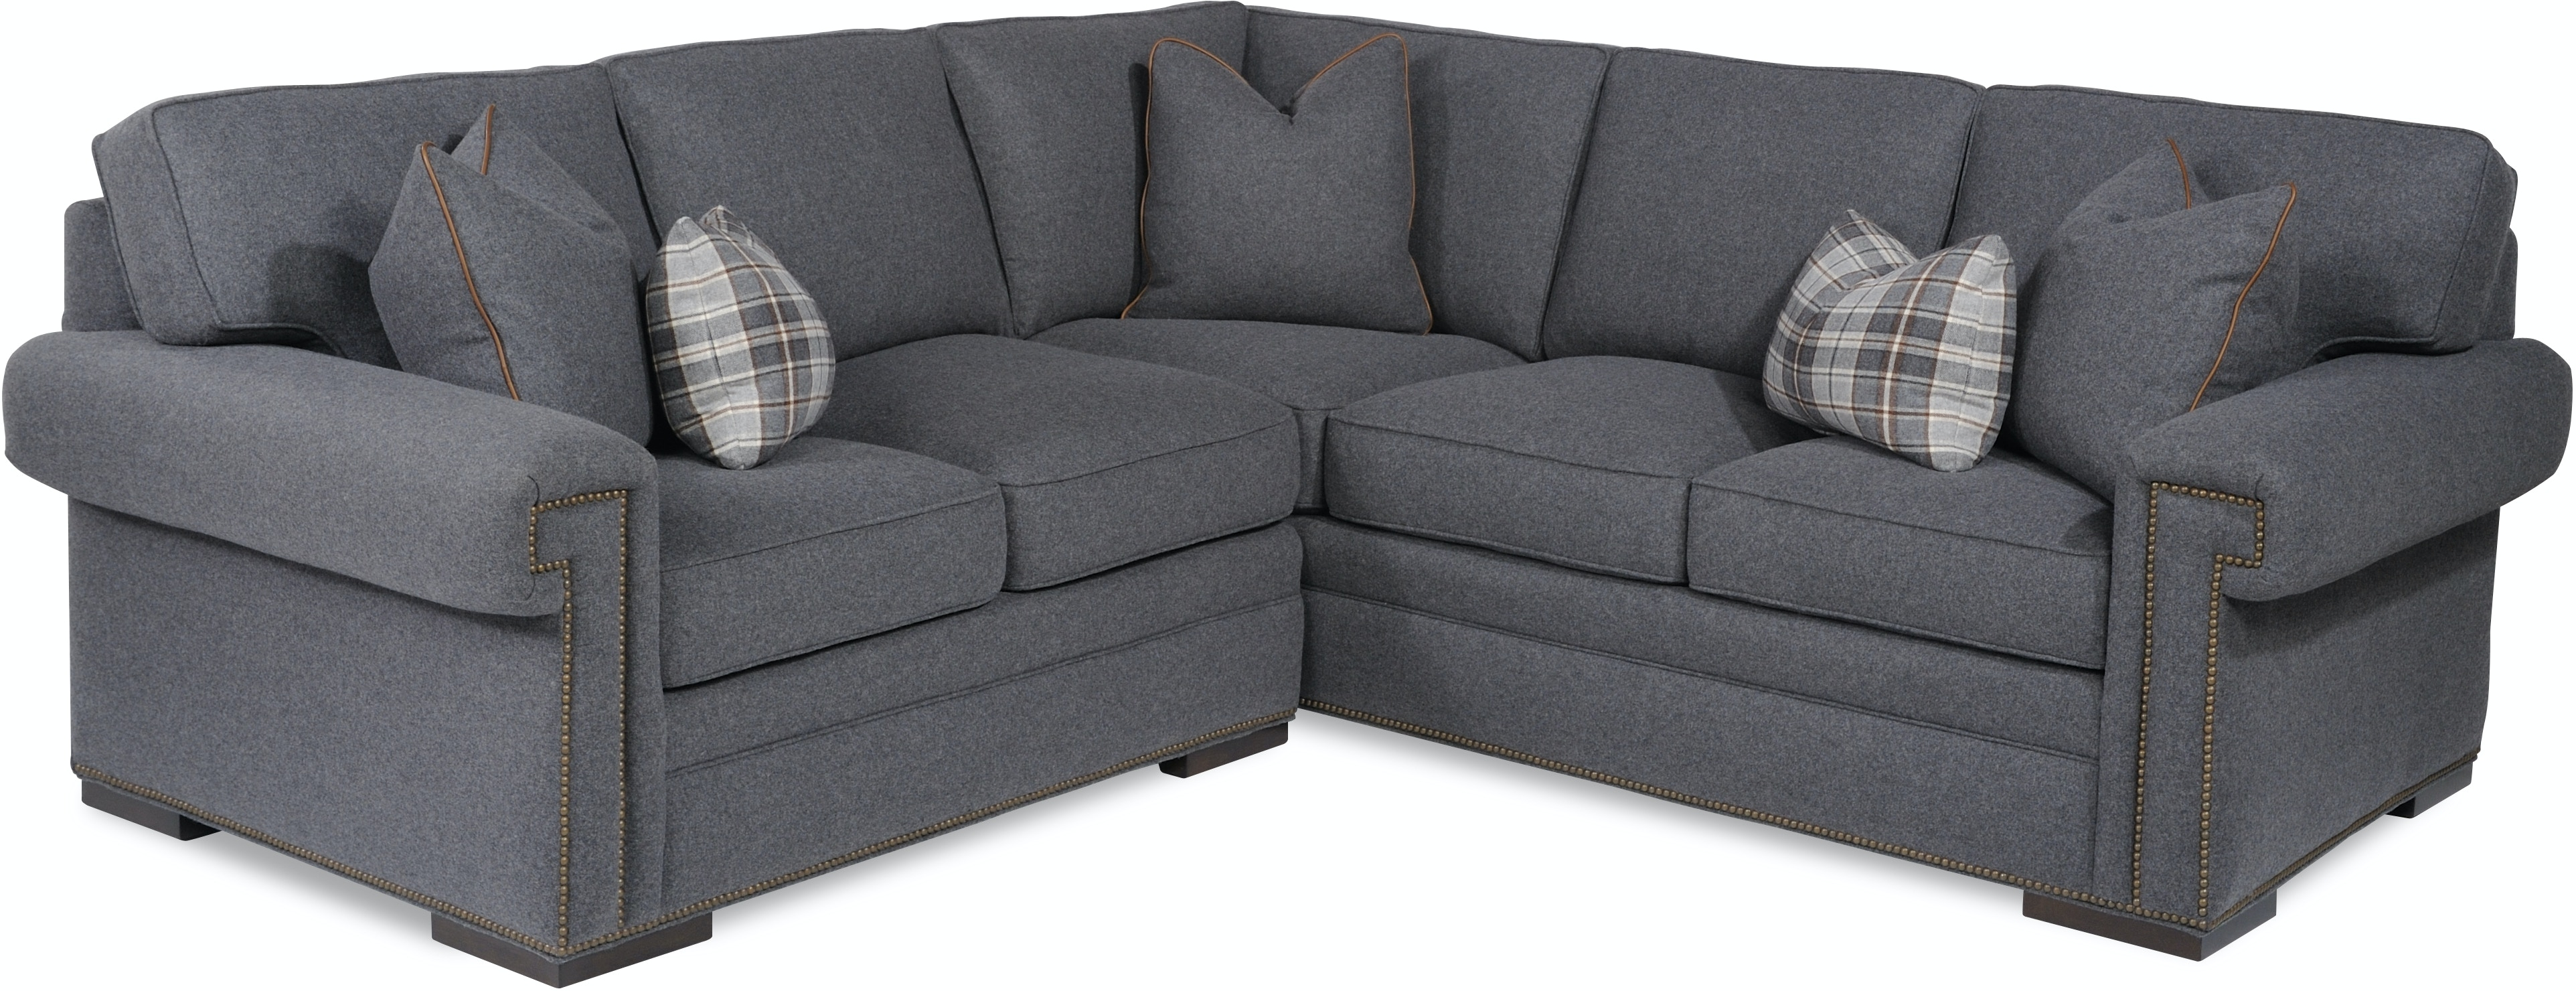 Taylor King Living Room Douglas Sectional 8415 Sectional